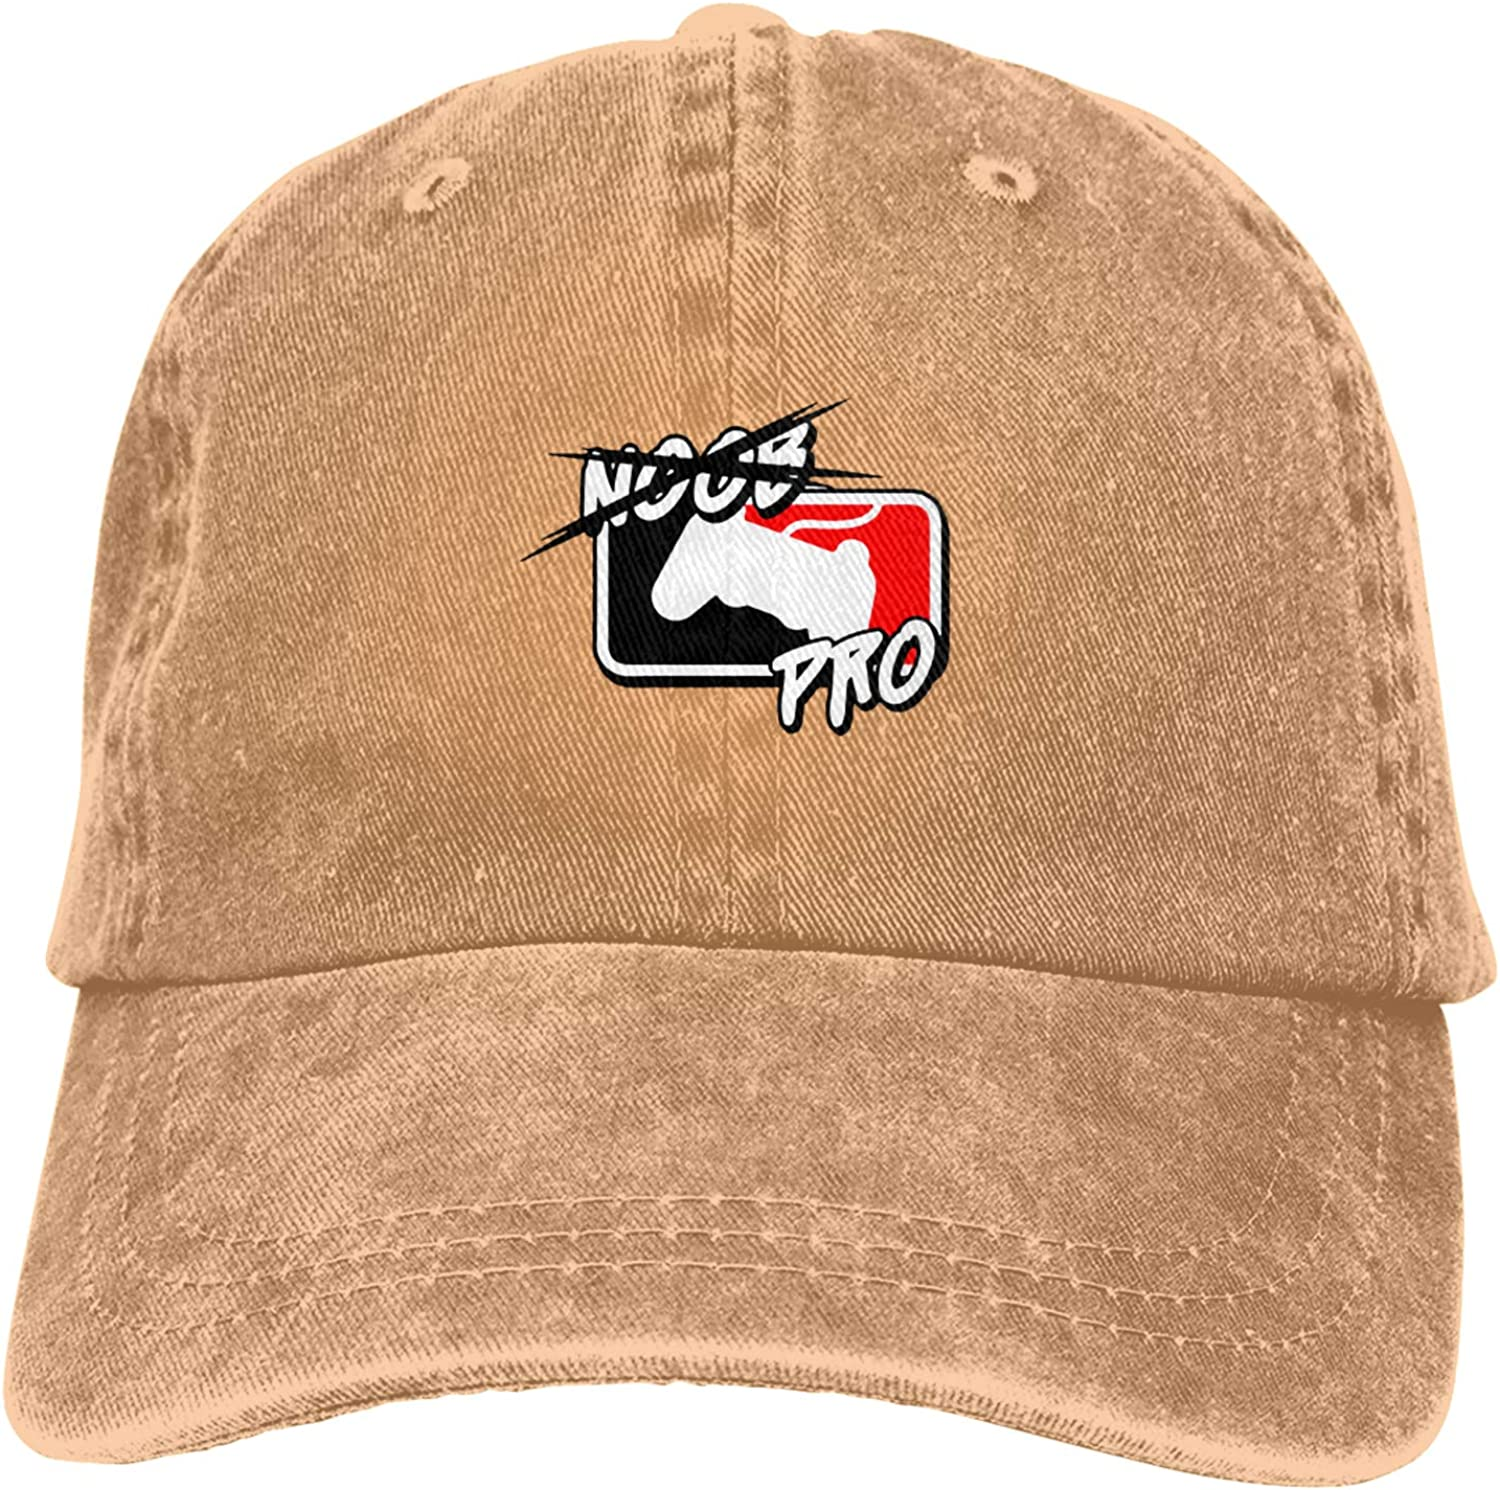 from Noob to Pro Unisex Adjustable Cowboy Hat Adult Cotton Baseball Cap